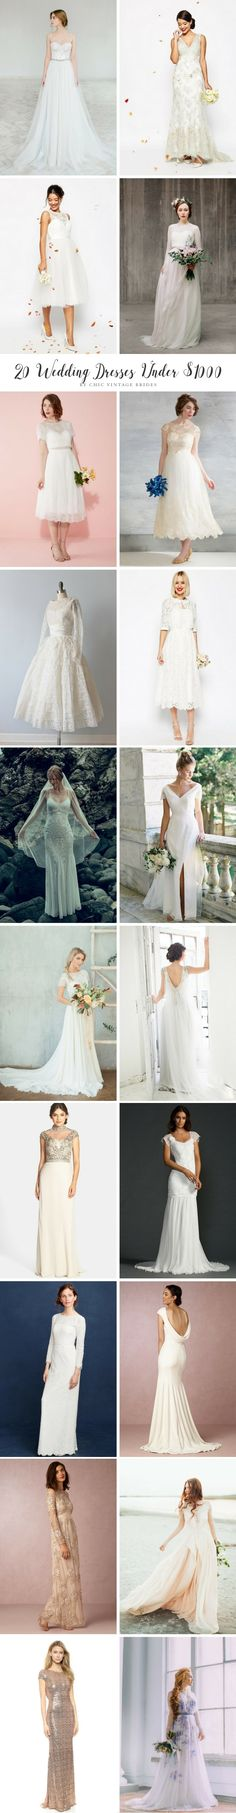 20 of the most incredible budget friendly wedding dresses!!